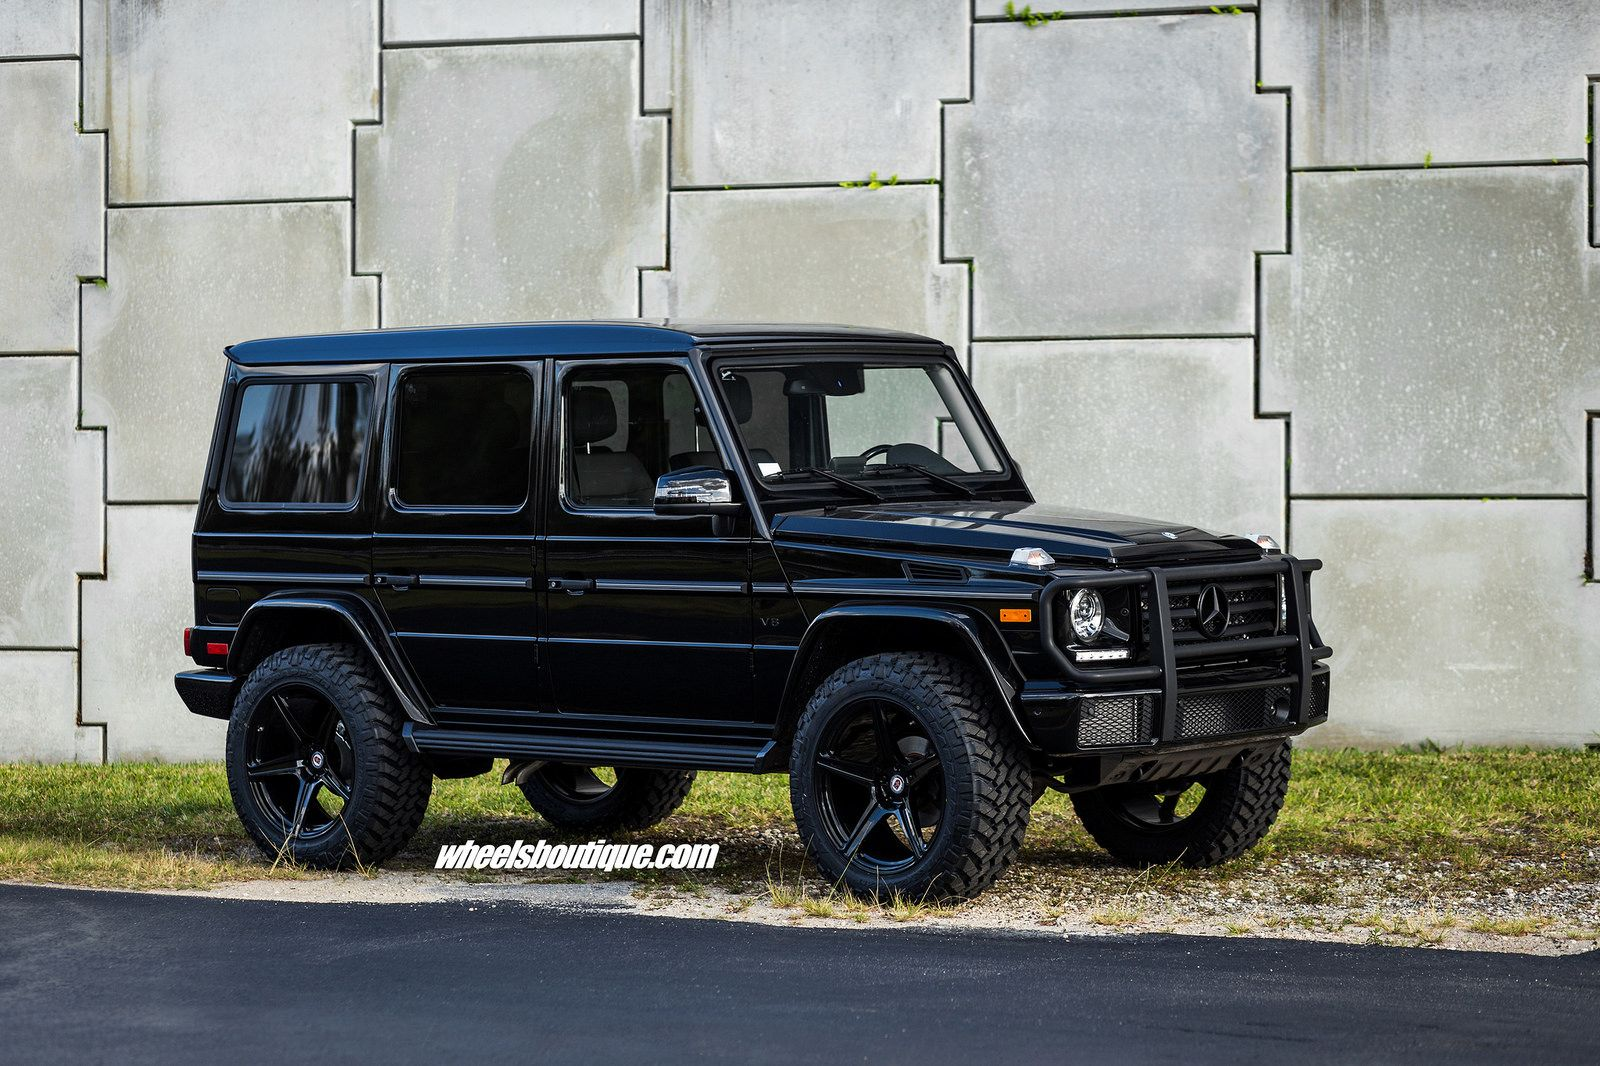 up the ante 5 lift kit on mercedes benz g wagon with hre s by teamwb mbworld org forums benz g g wagon mercedes lift kit on mercedes benz g wagon